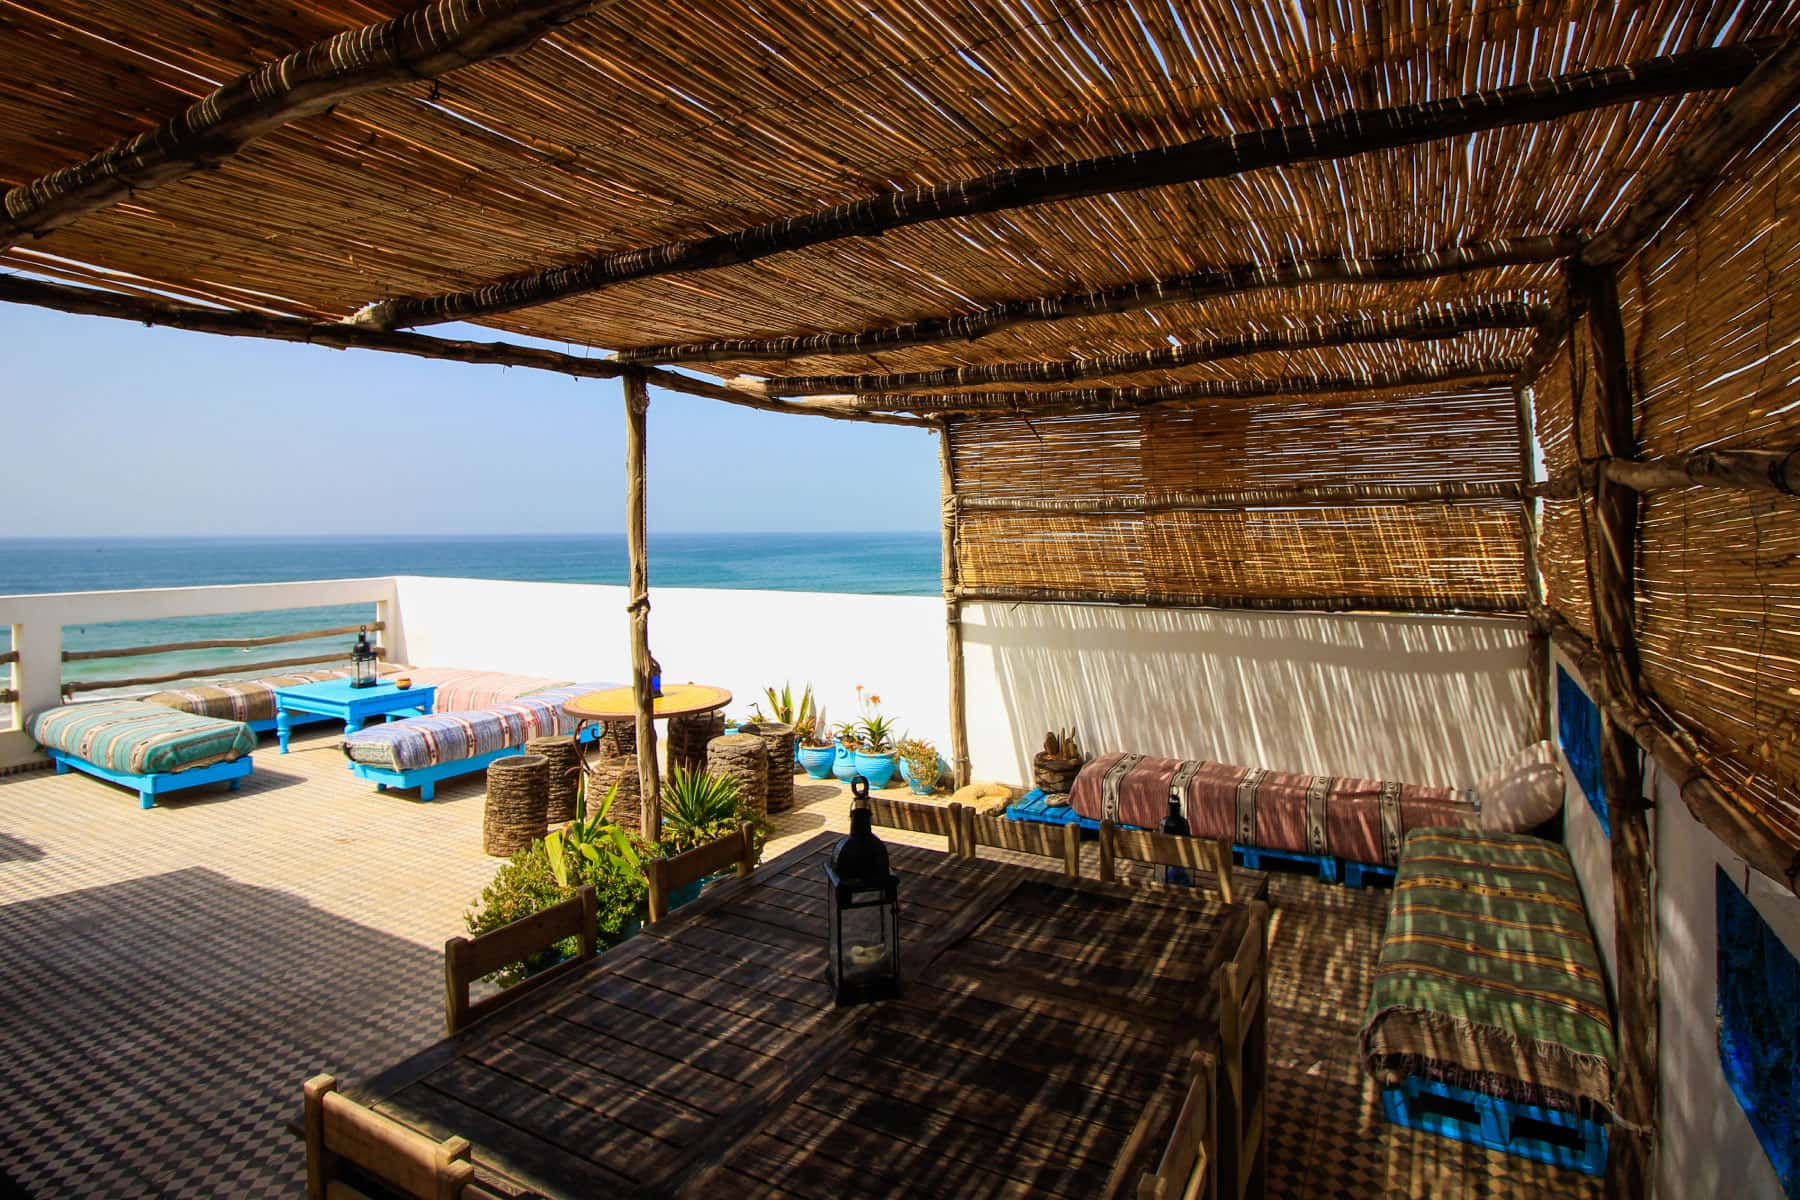 Surfing Holidays in Agadir Morocco - Surfhouse Anza - Bluewavesmorocco